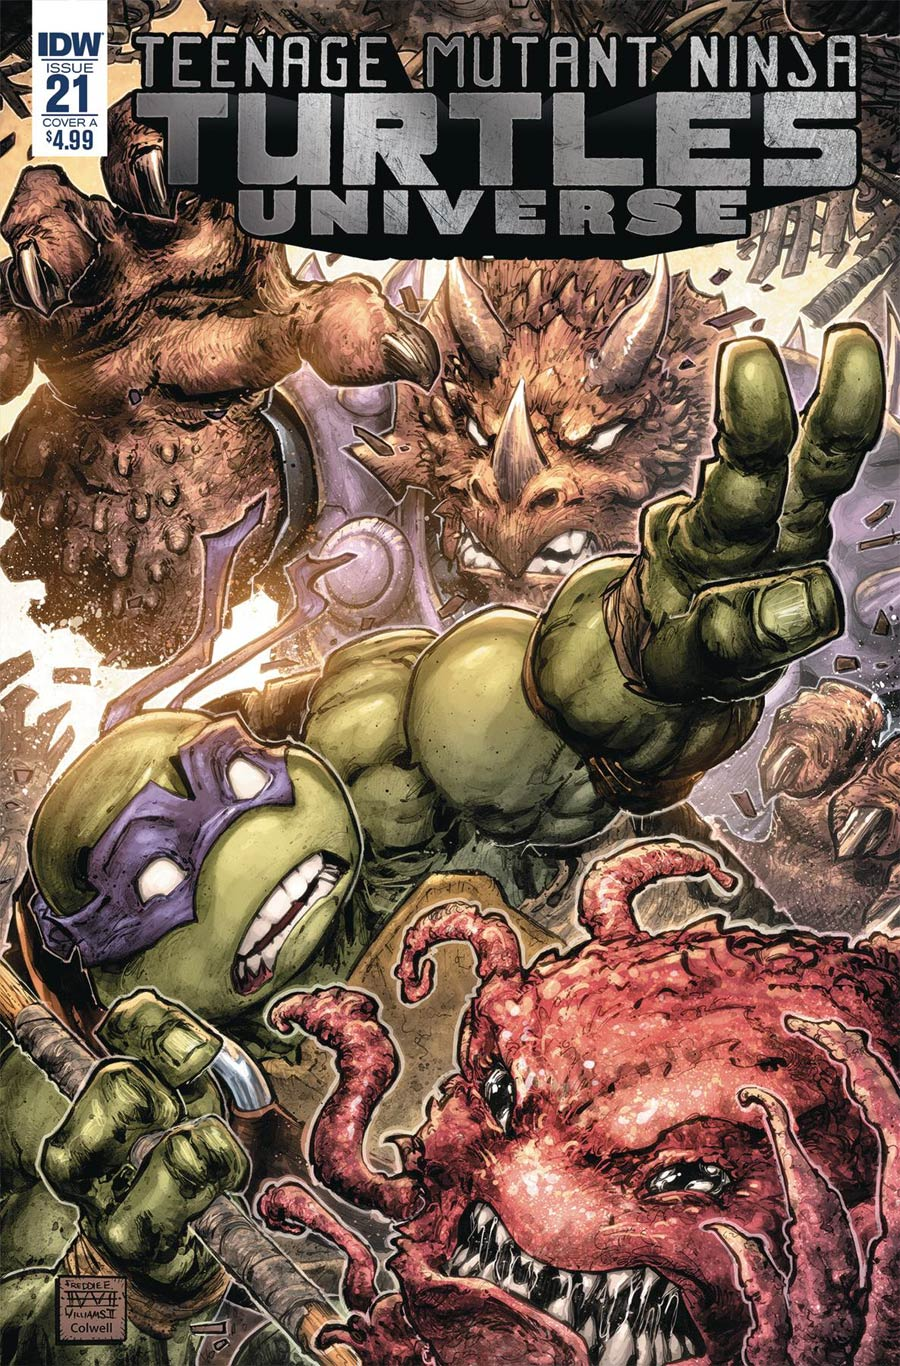 Teenage Mutant Ninja Turtles Universe #21 Cover A Regular Freddie E Williams II Cover